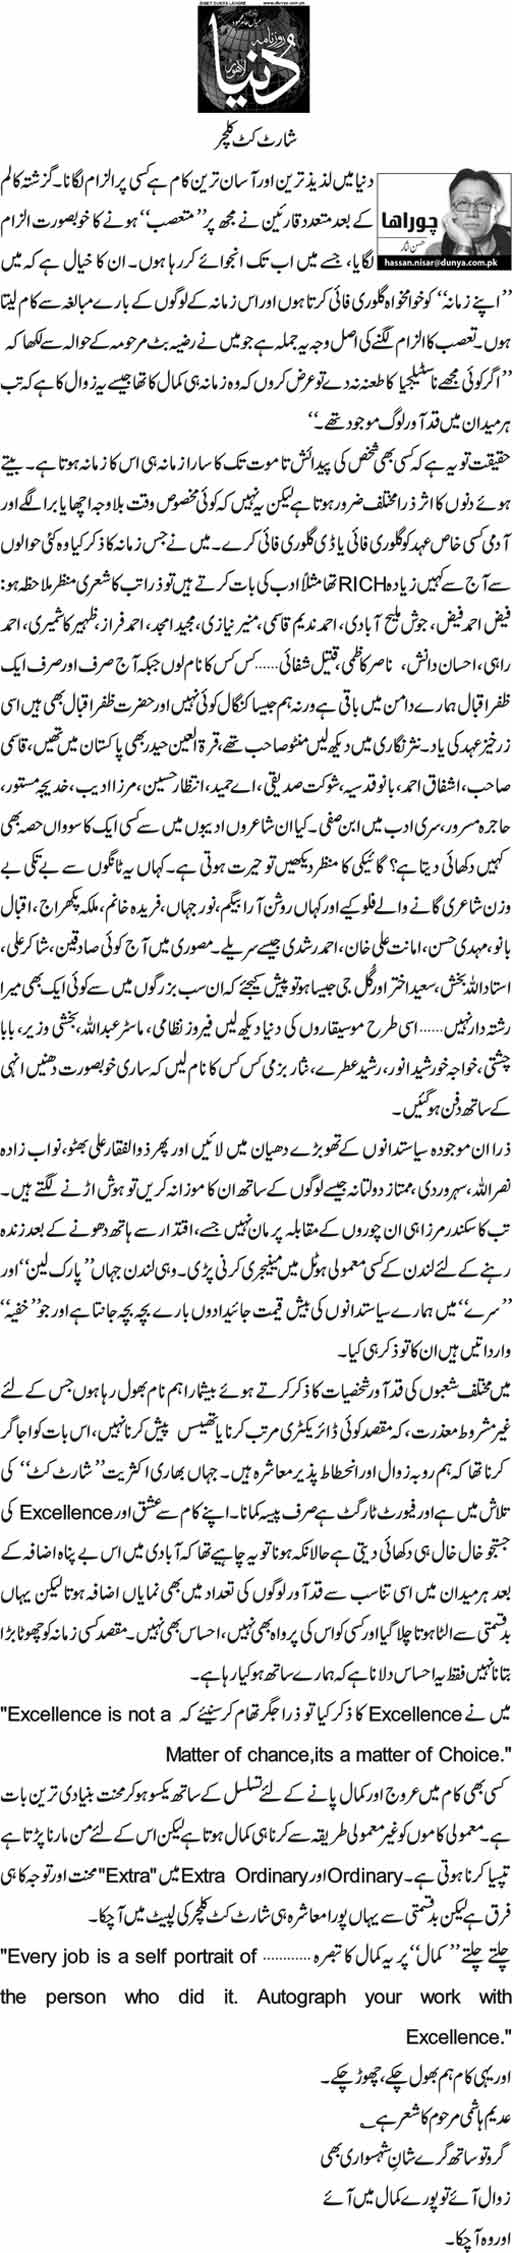 Shortcut culture - Hassan Nisar